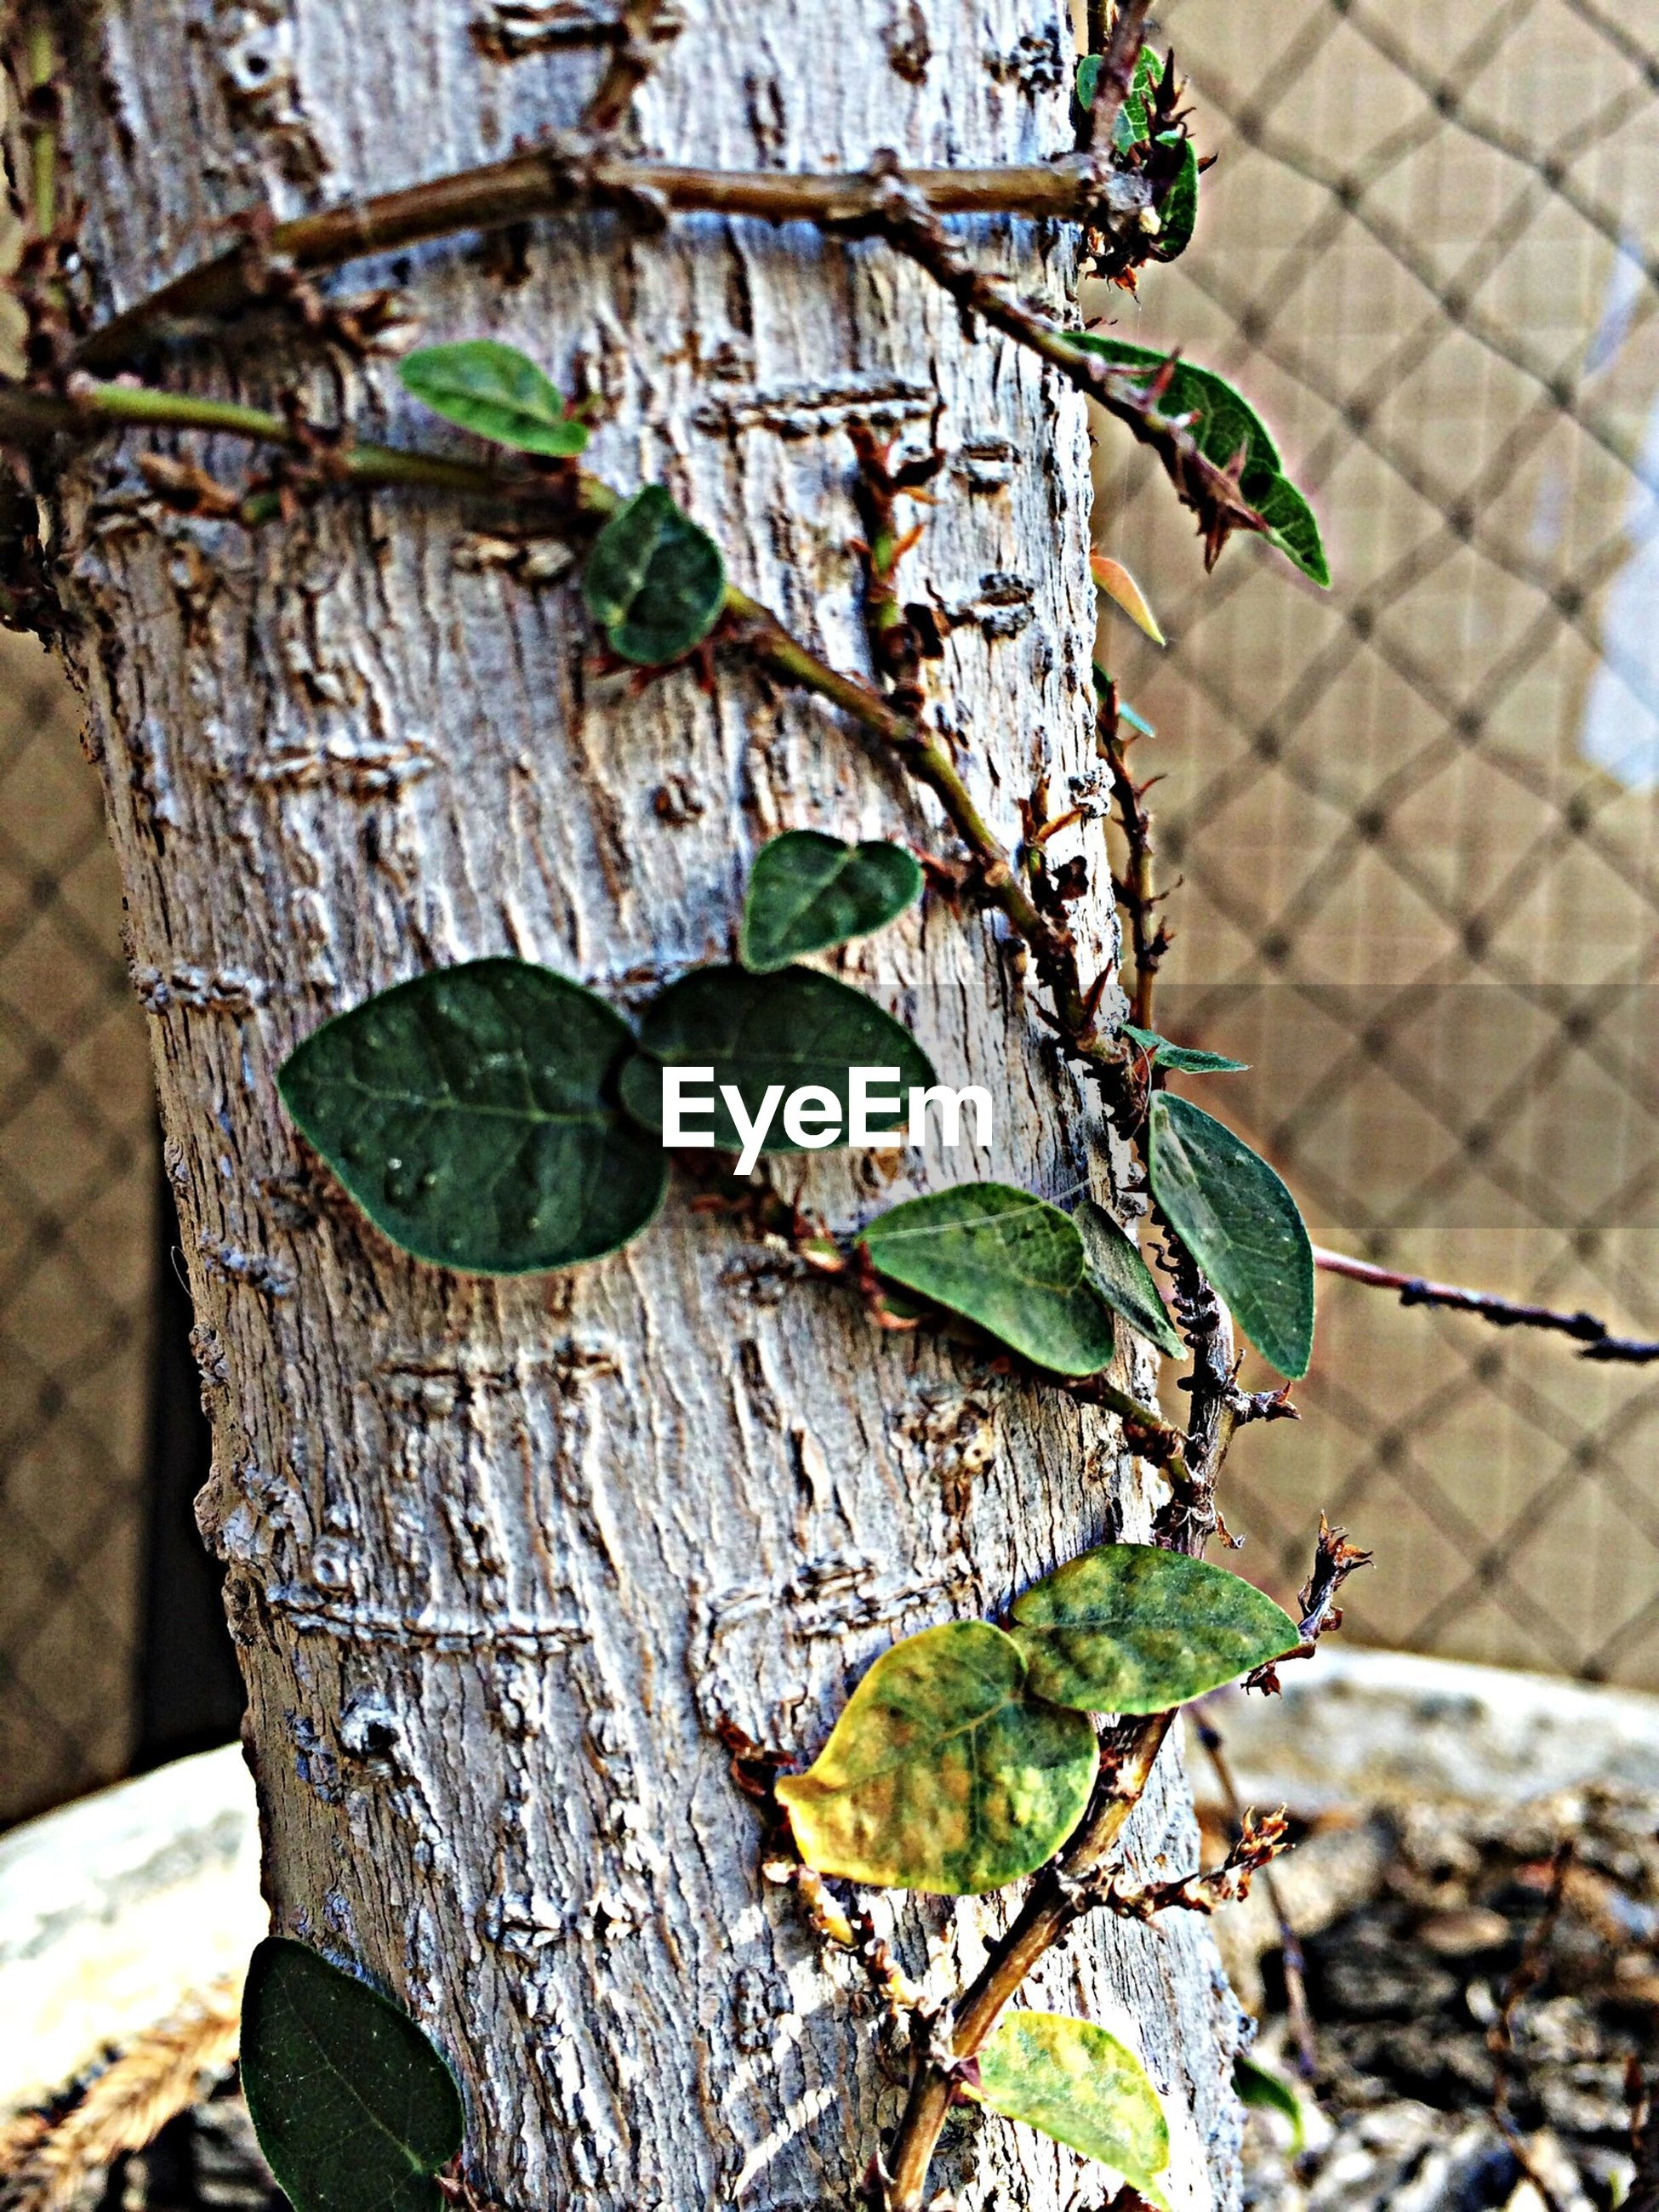 leaf, close-up, growth, tree trunk, plant, focus on foreground, branch, green color, nature, tree, outdoors, wood - material, day, ivy, no people, wall - building feature, stem, one animal, twig, growing